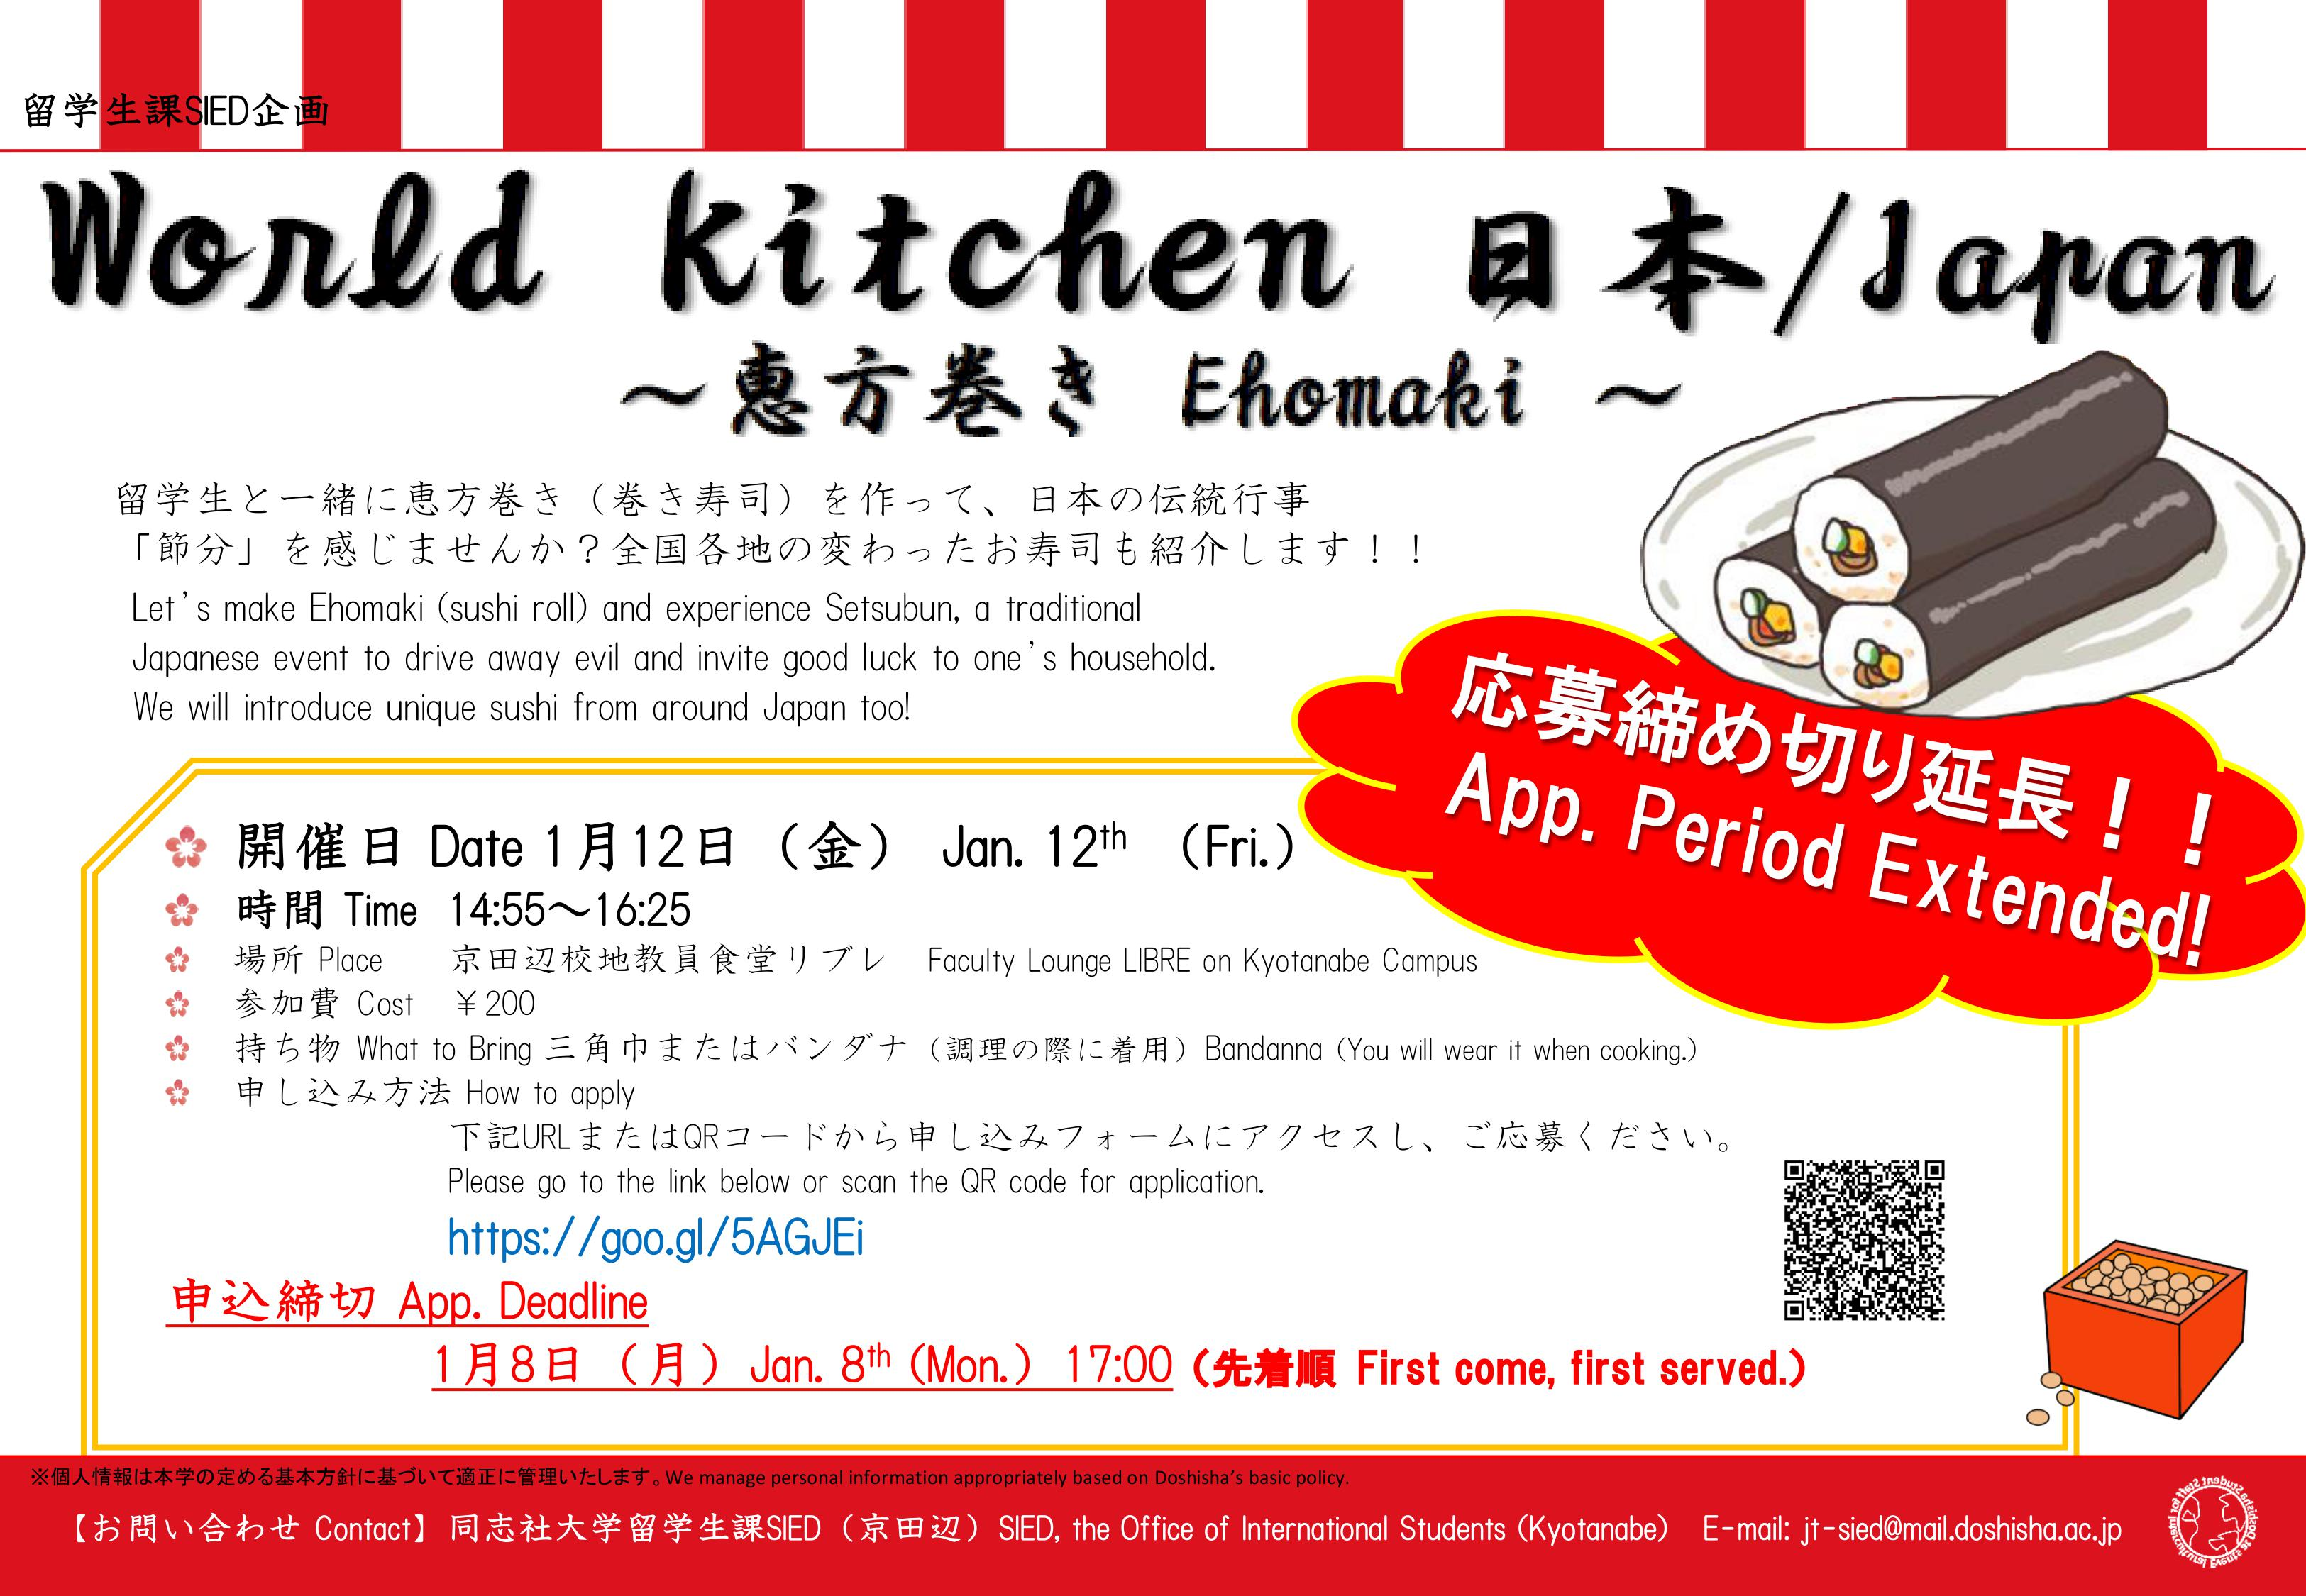 App. Period Extended!】\